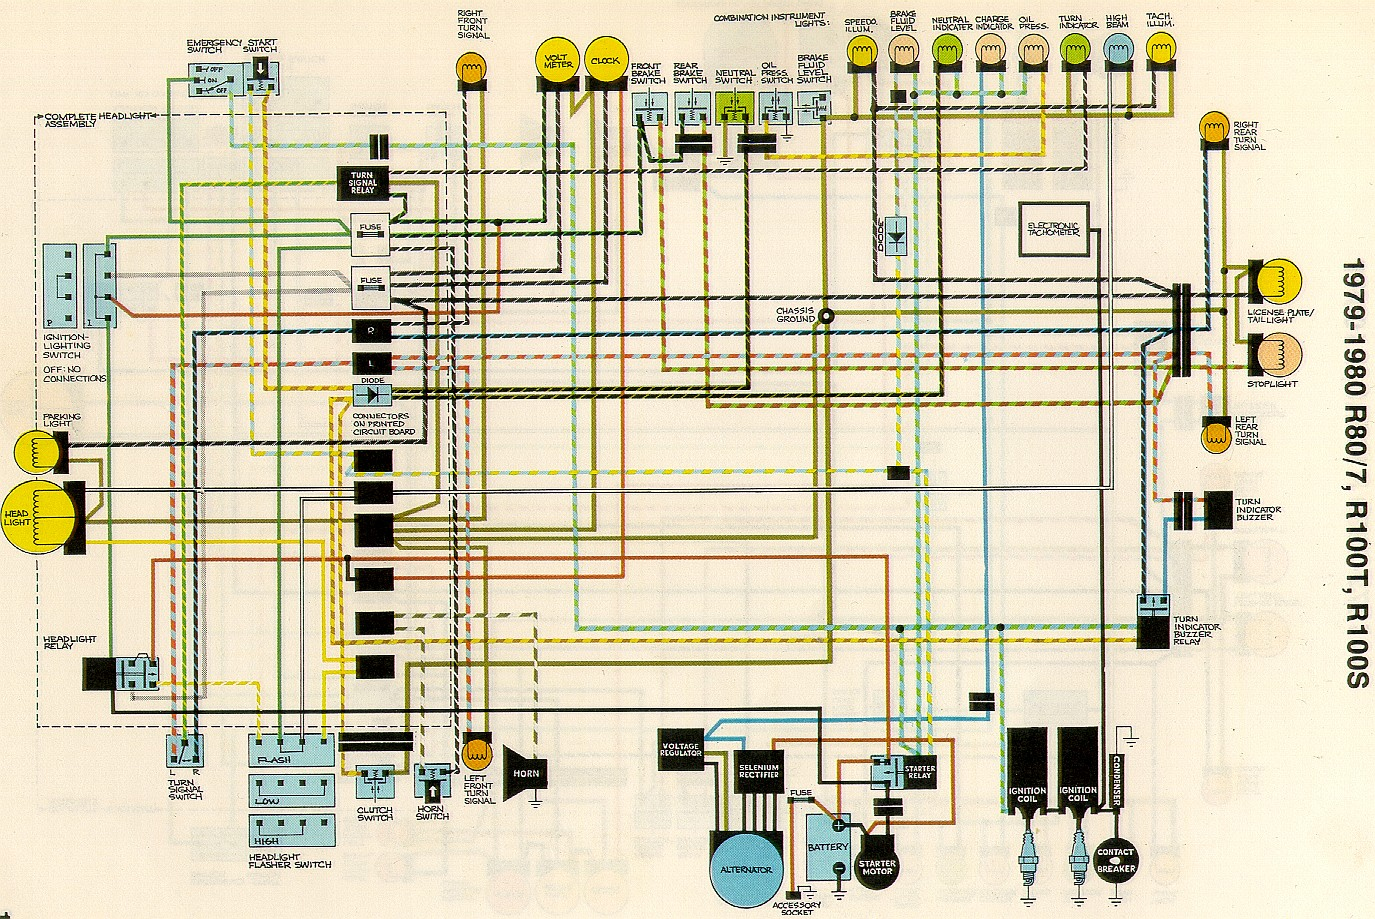 79 5 united articles wiring diagrams bmw r100 wiring diagram at gsmx.co